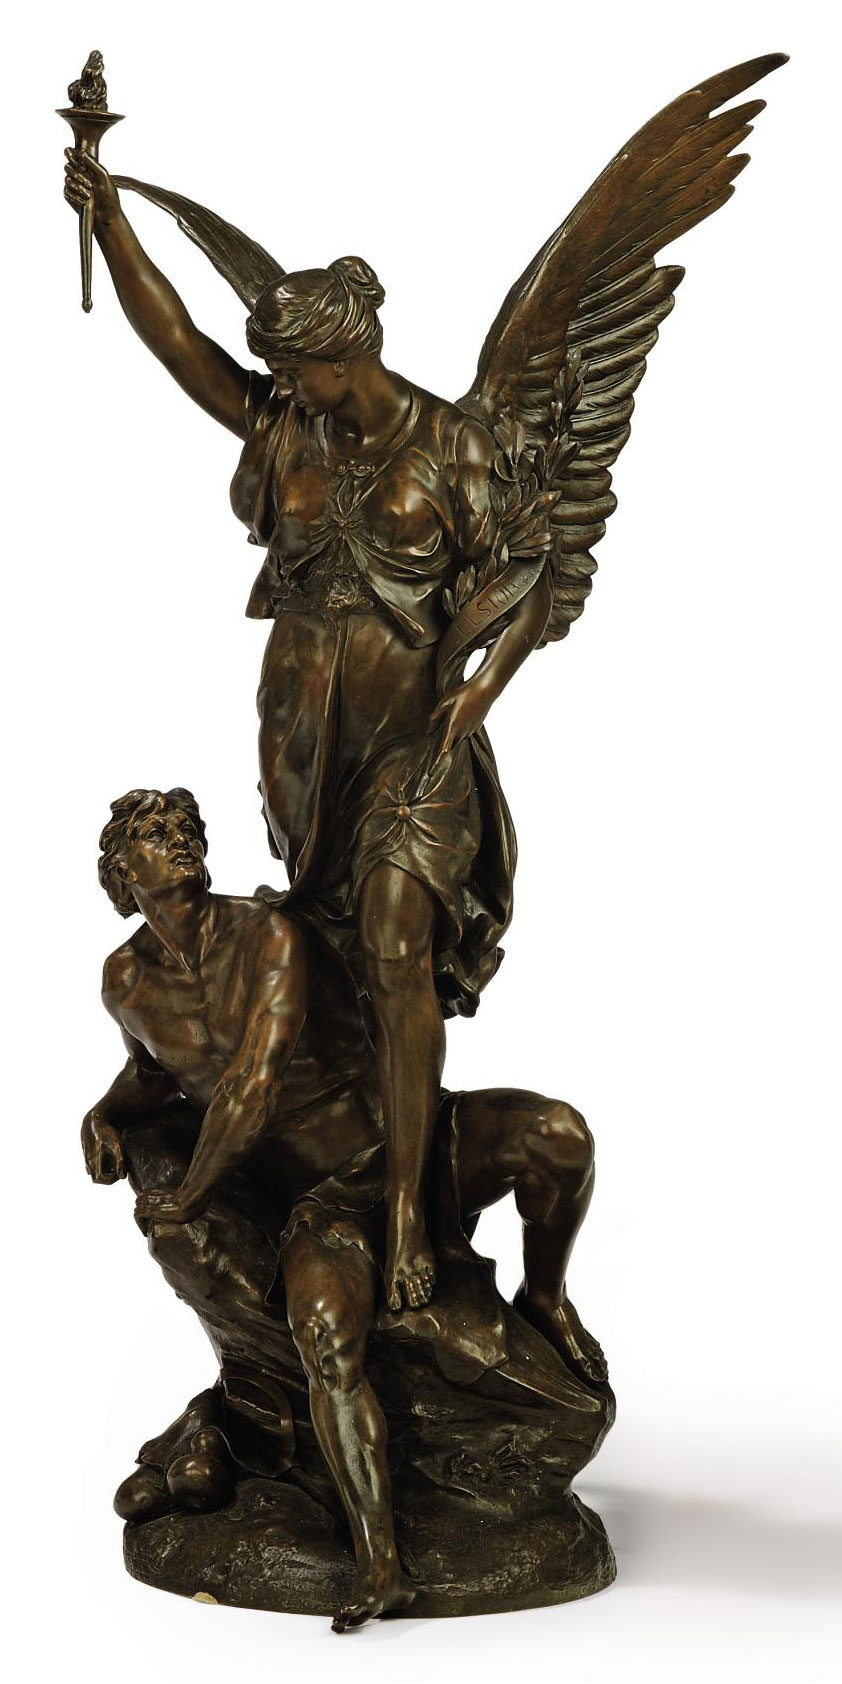 A FRENCH BRONZE GROUP ENTITLED 'EXCELSIOR'